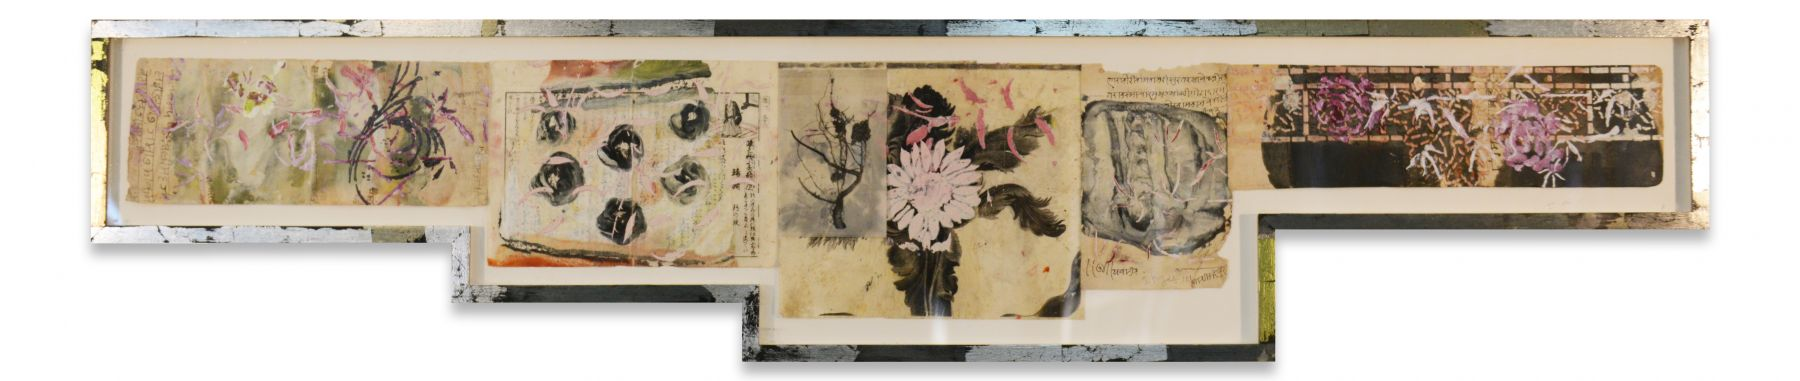 Untitled, 2018, Oil stick and encaustic on Chinese book papers and Indian ledger paper in artist's frame, 14 5/8 x 69 1/4 x 1 1/4 inches, 37.1 x 175.9 x 3.2 cm, MMG#30911